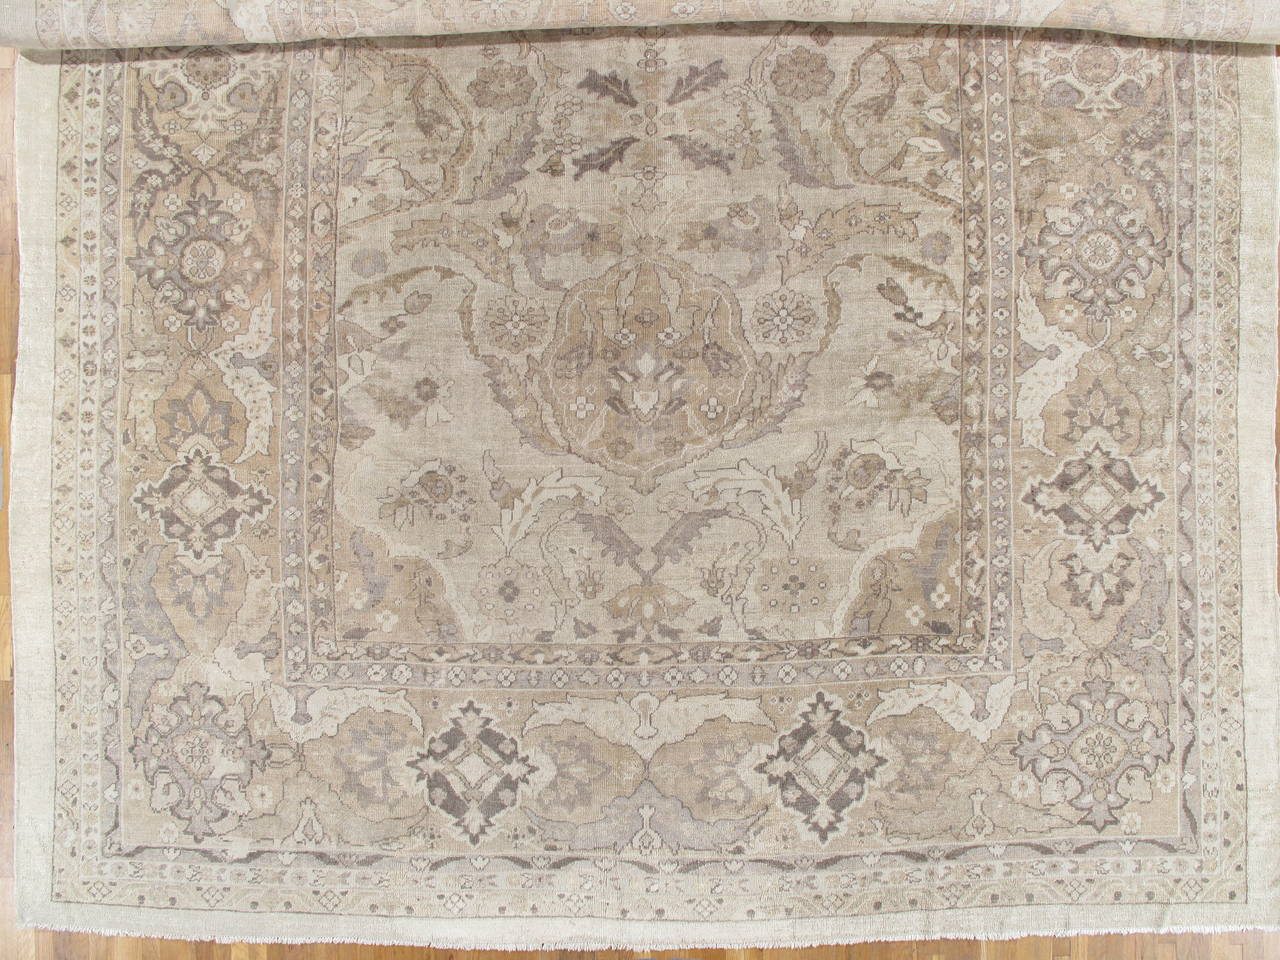 Hand knotted antique sultanabad carpet handmade oriental rug neutral tn wool persian carpet